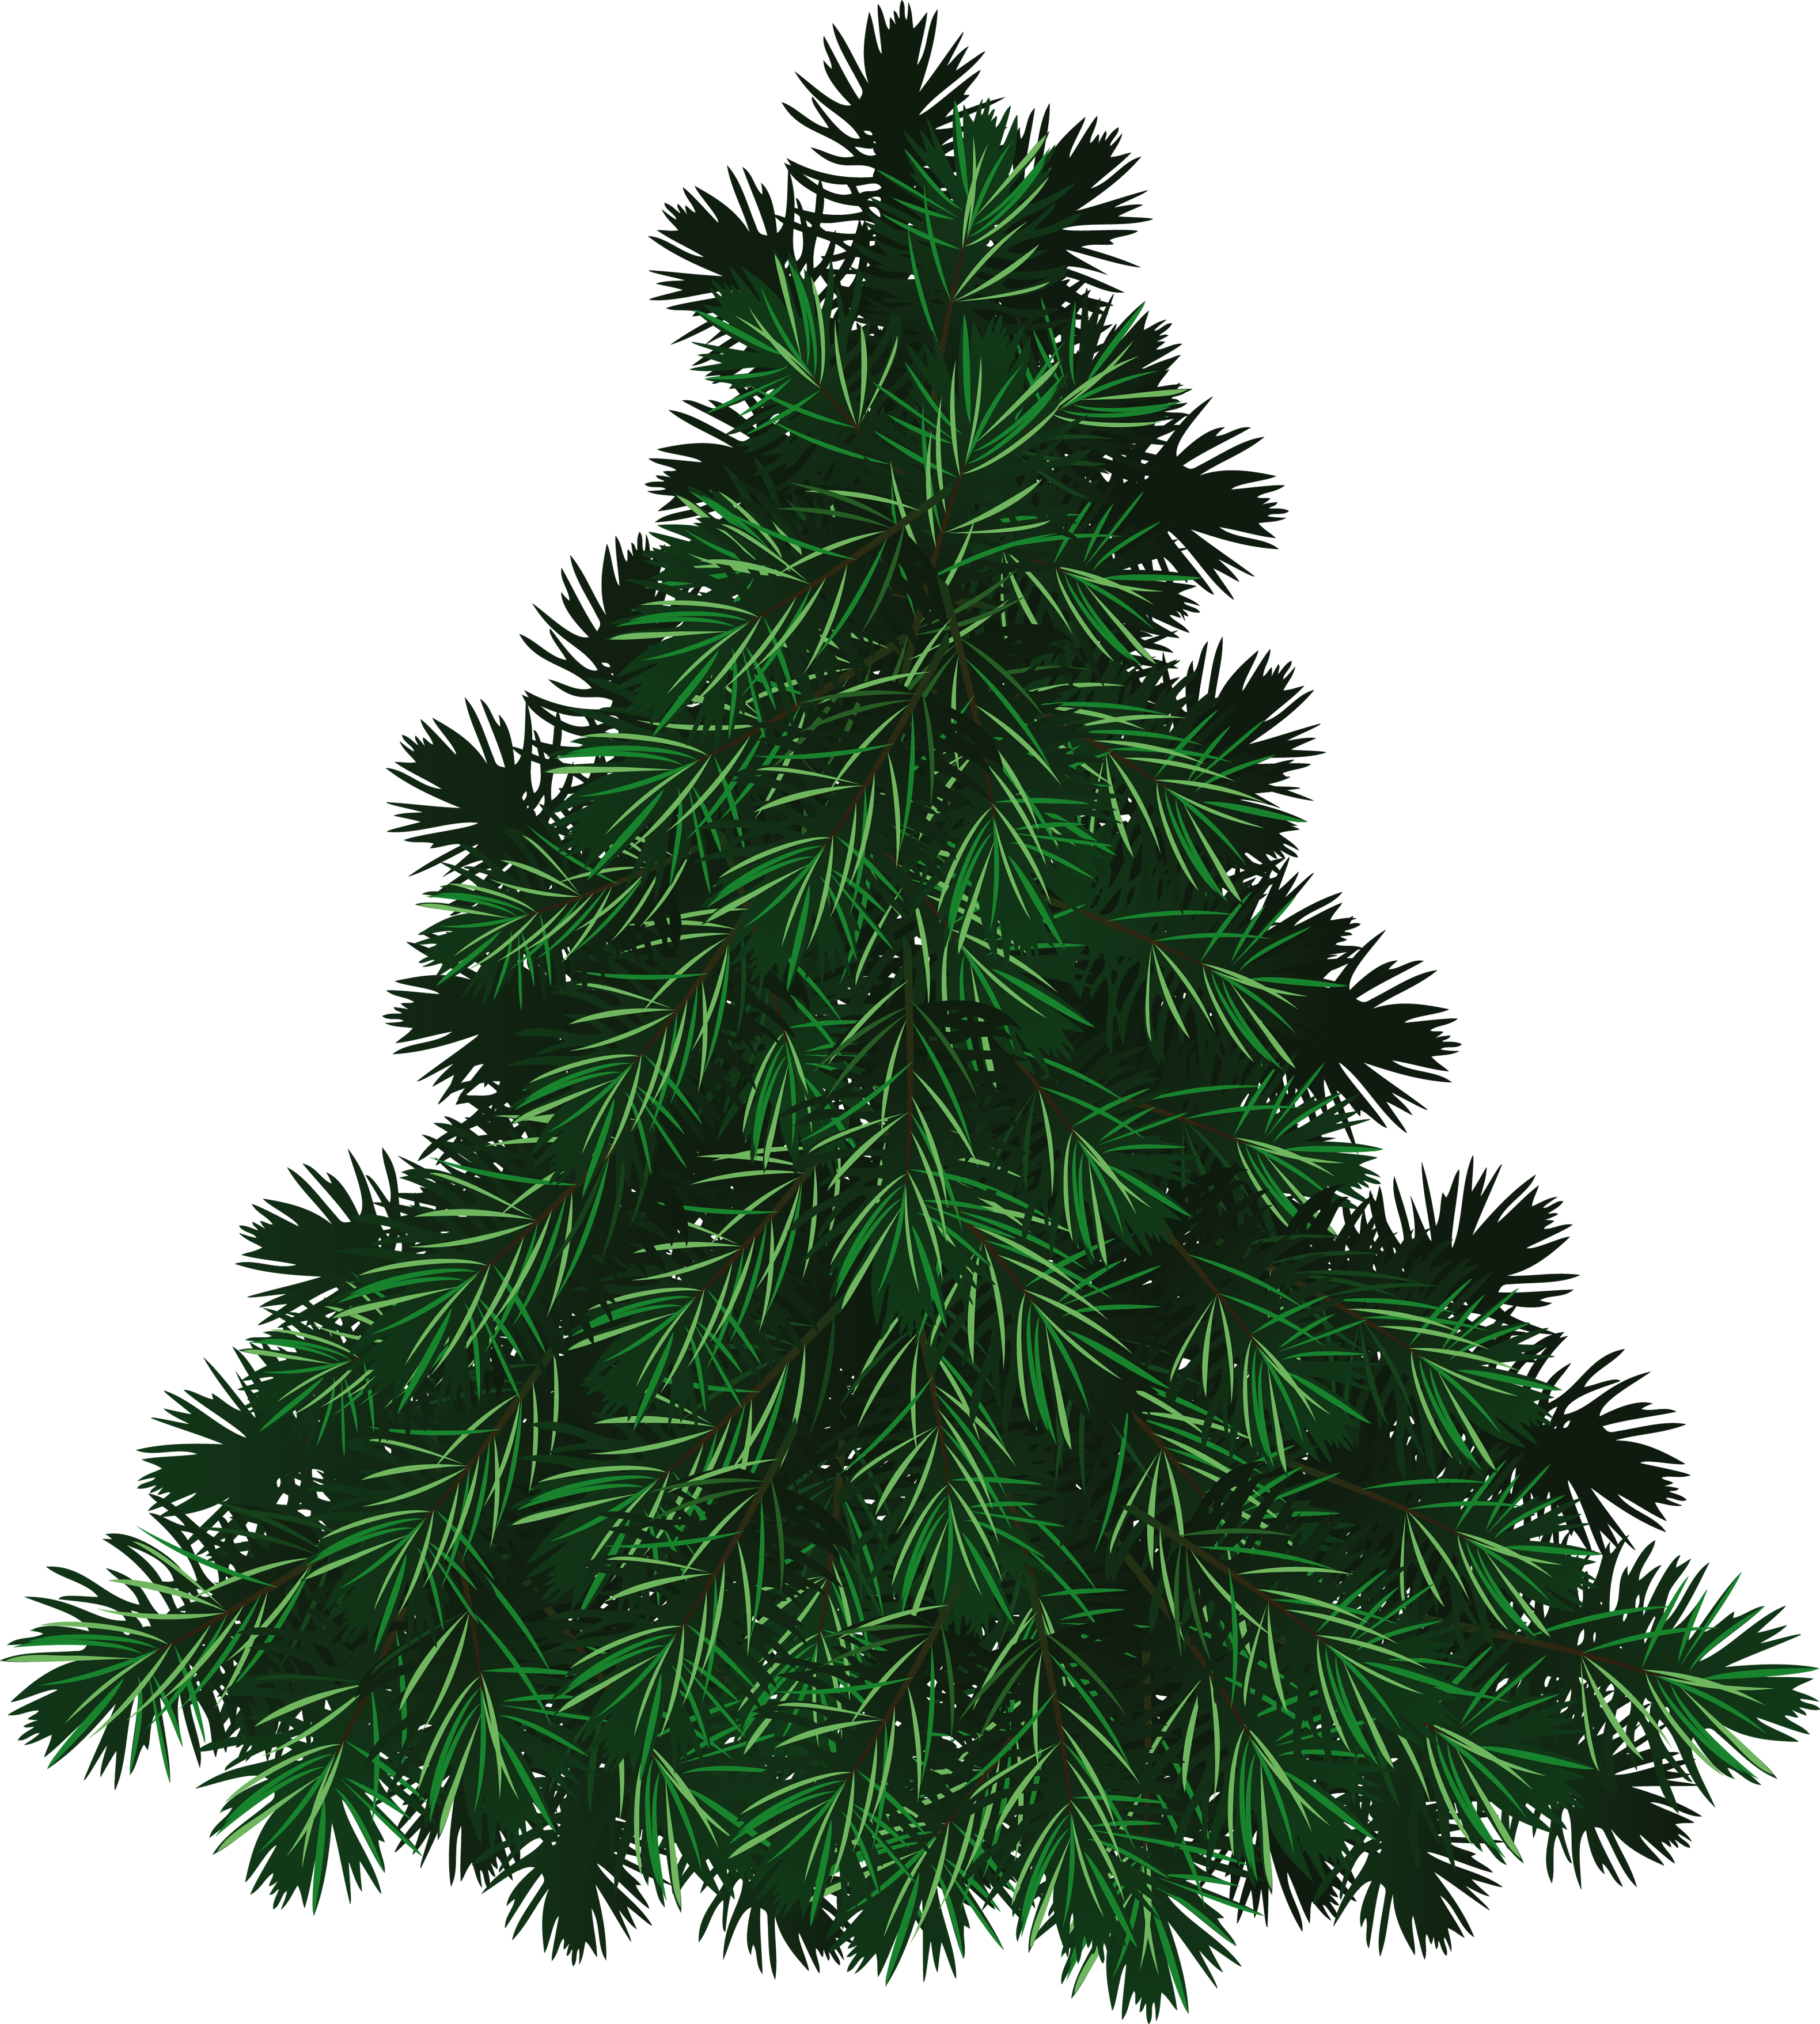 Fir tree clipart picture transparent library Fir Tree PNG Image - PurePNG | Free transparent CC0 PNG Image Library picture transparent library